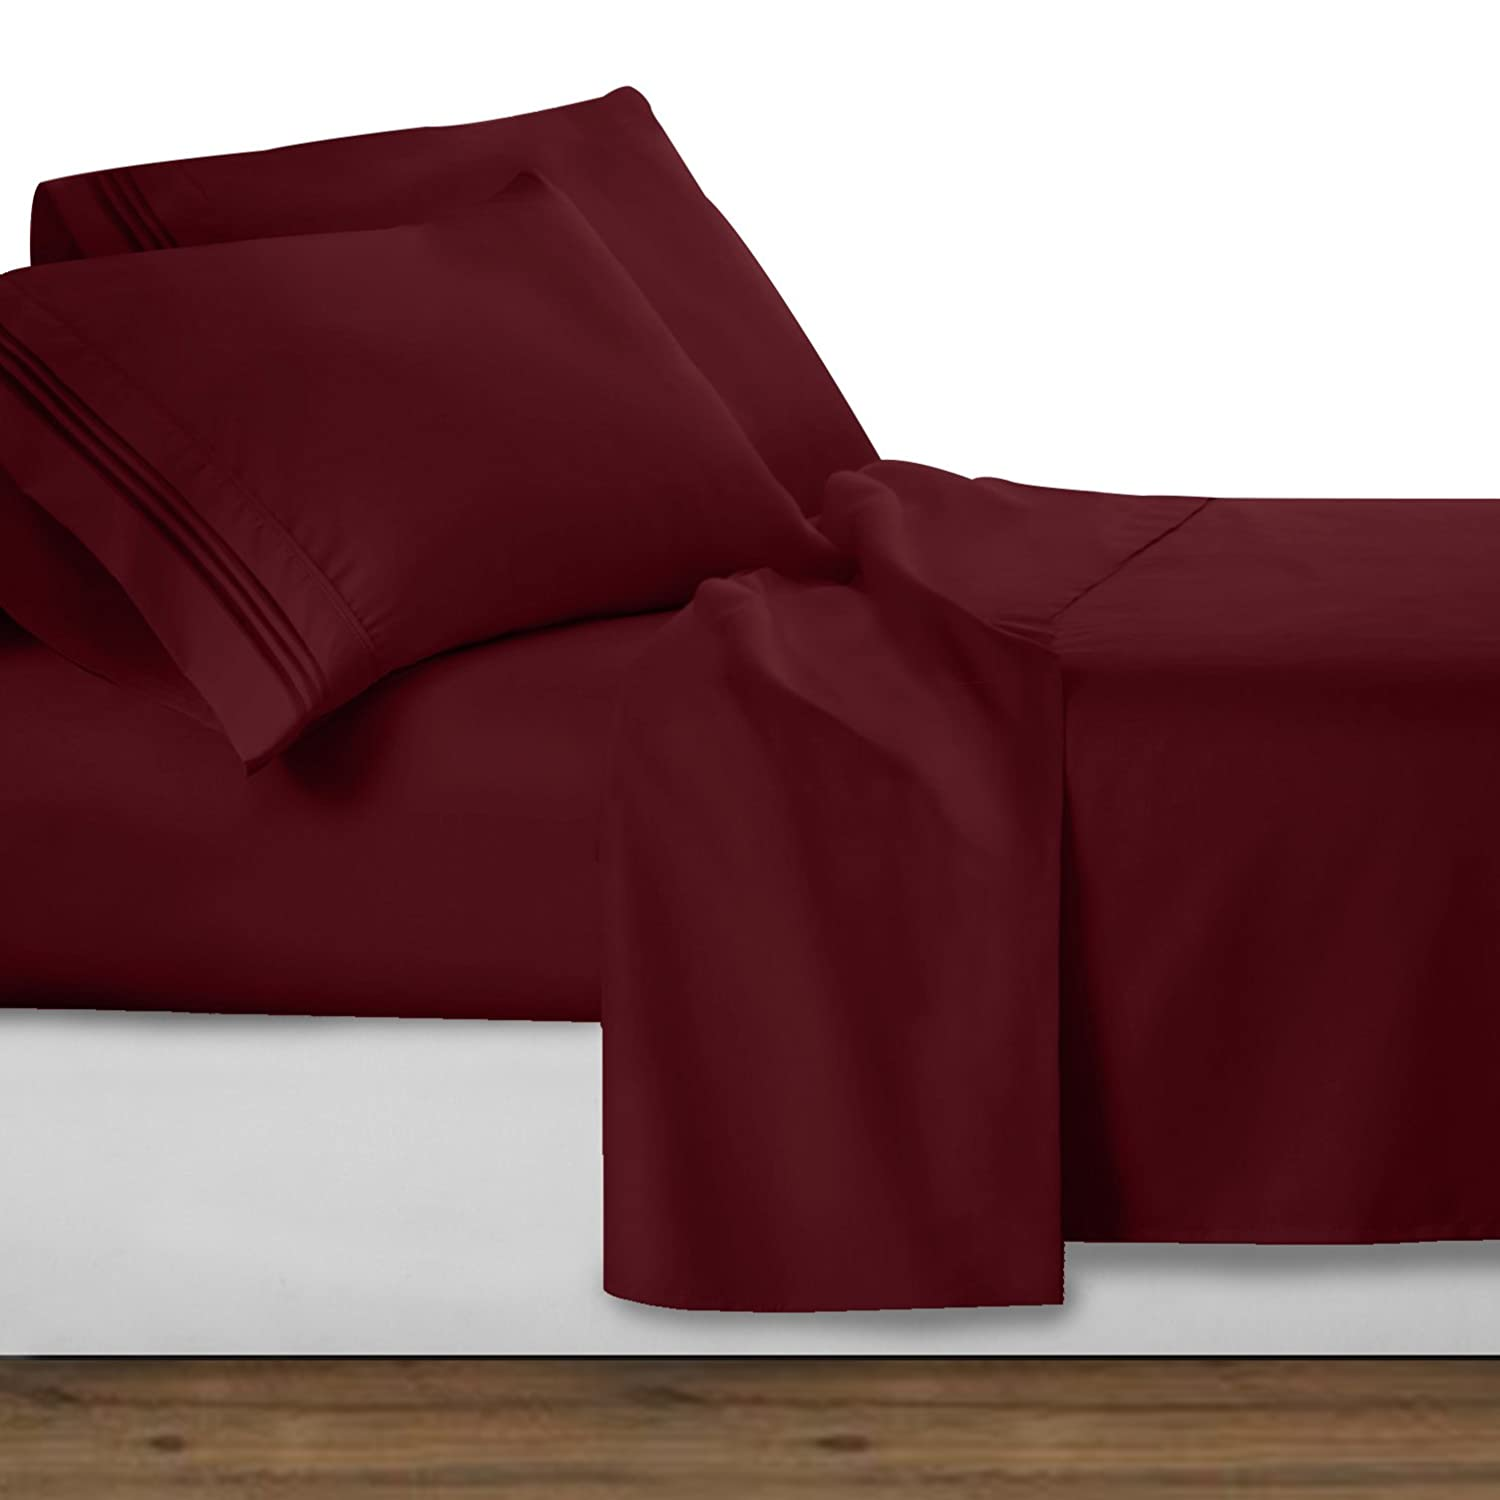 Clara Clark Premier 1800 Collection 4pc Bed Sheet Set - Queen Size, Burgundy Red